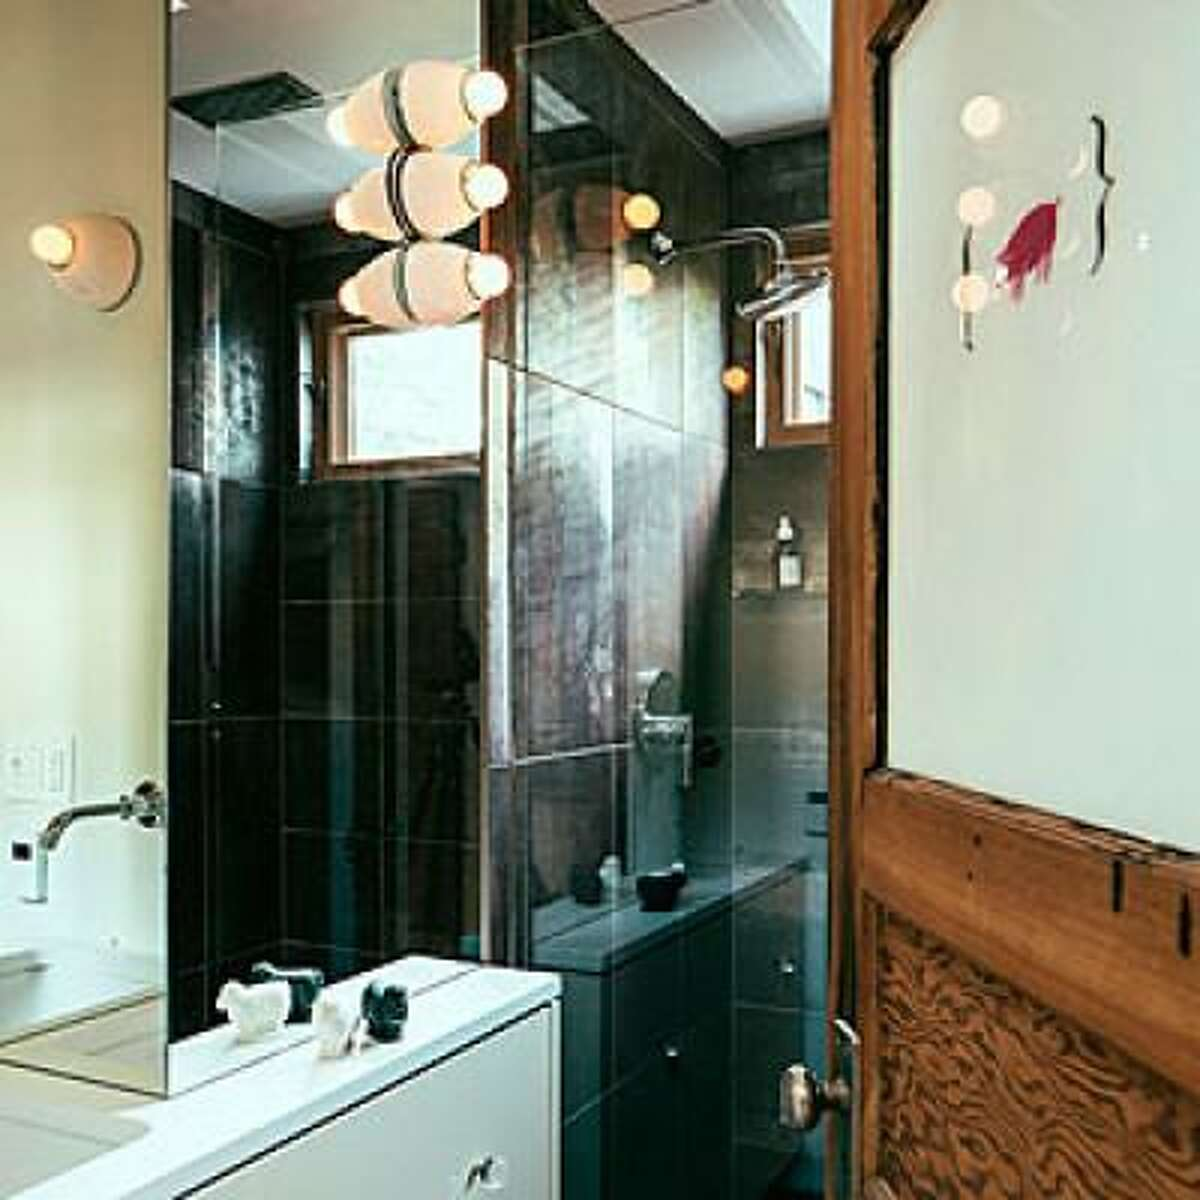 Reflect everything Homeowner Daniel Thomas ditched the painted walls in his Portland Victorian for walls covered in mirrors. Even though the bathroom is barely big enough for the door to swing open, the mirrors trick you into thinking it's twice the size. Also helping: the glass door to the shower and glass ceiling that reveals rafters above. See the rest of this modernized Victorian home Read more: 14 new ways to revamp your bathroom